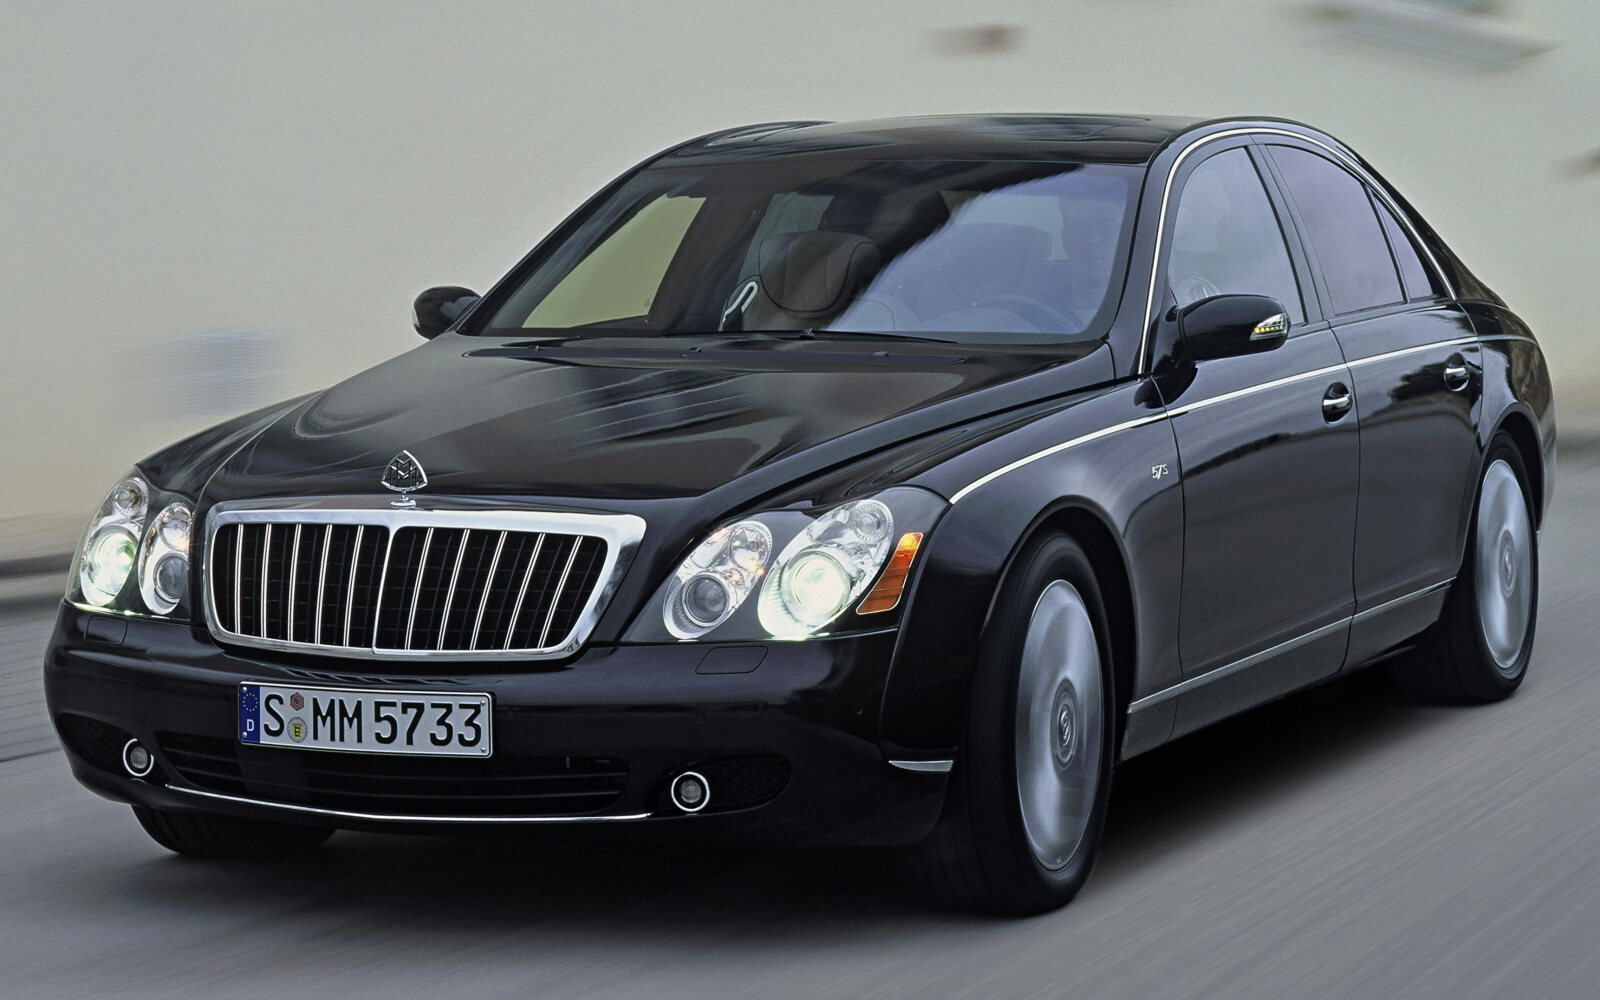 PKW4690050 Maybach 57 S